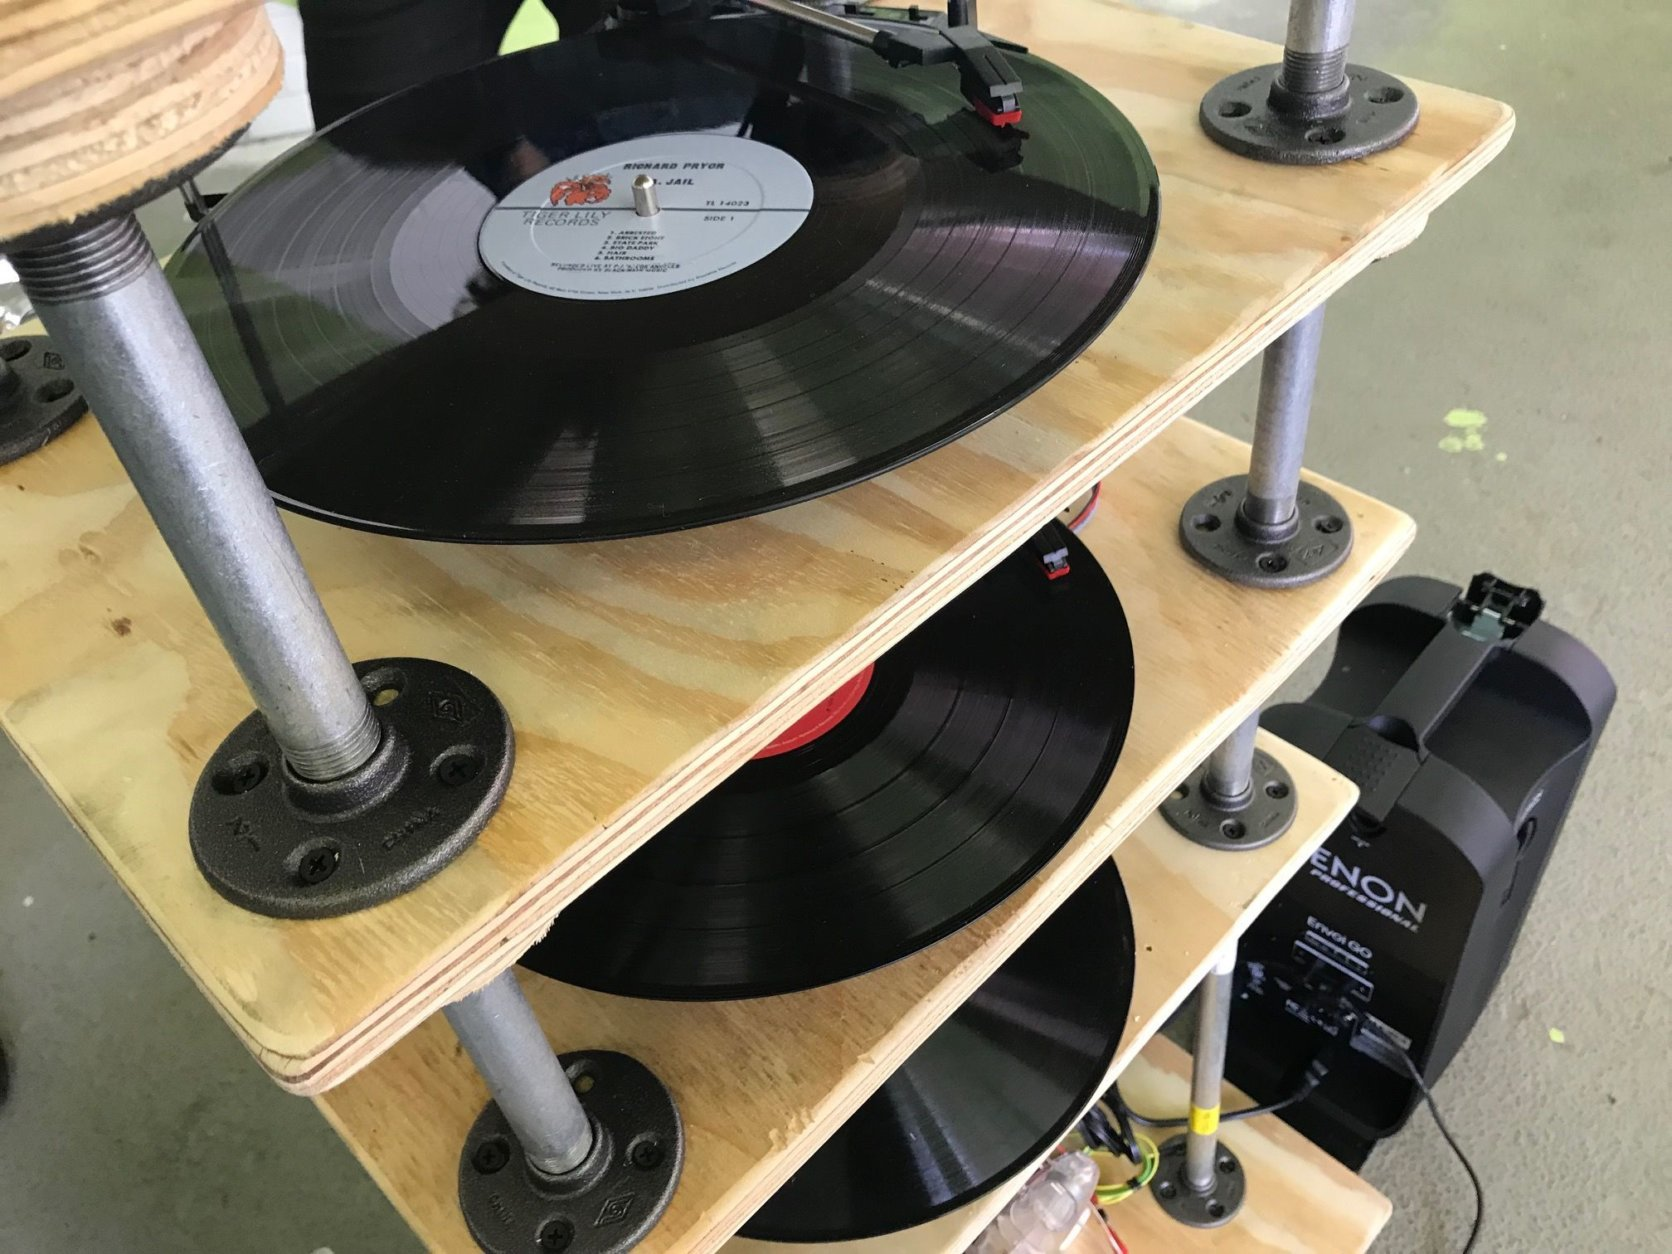 With five turntables playing records simultaneously, the results can be cacophonous. (WTOP/Neal Augenstein)